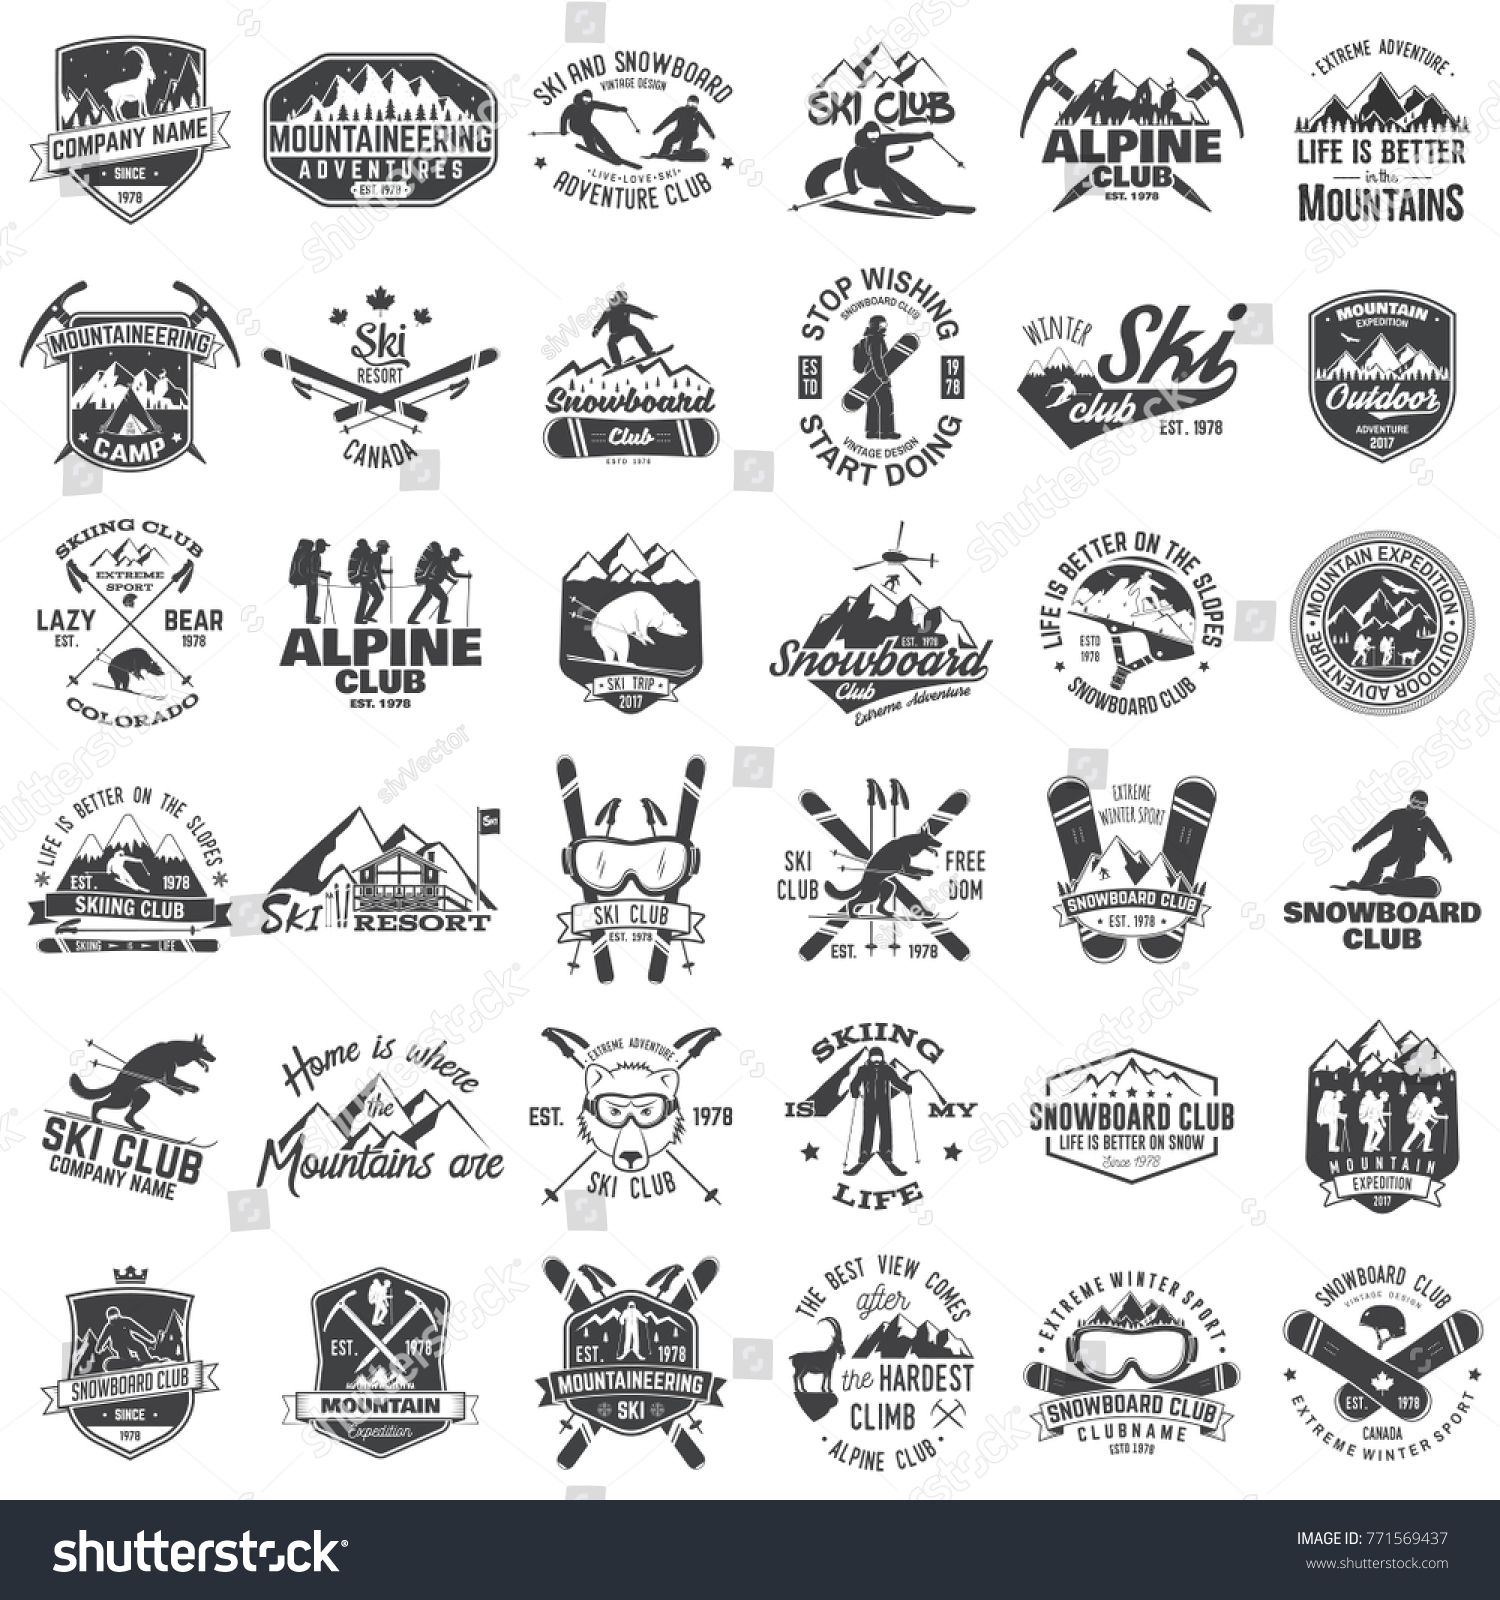 Mountain Expedition Ski And Snowboard Club Emblem Vector Illustration Concept For Shirt Print Vintage Typography Design Vintage Typography Winter Extreme